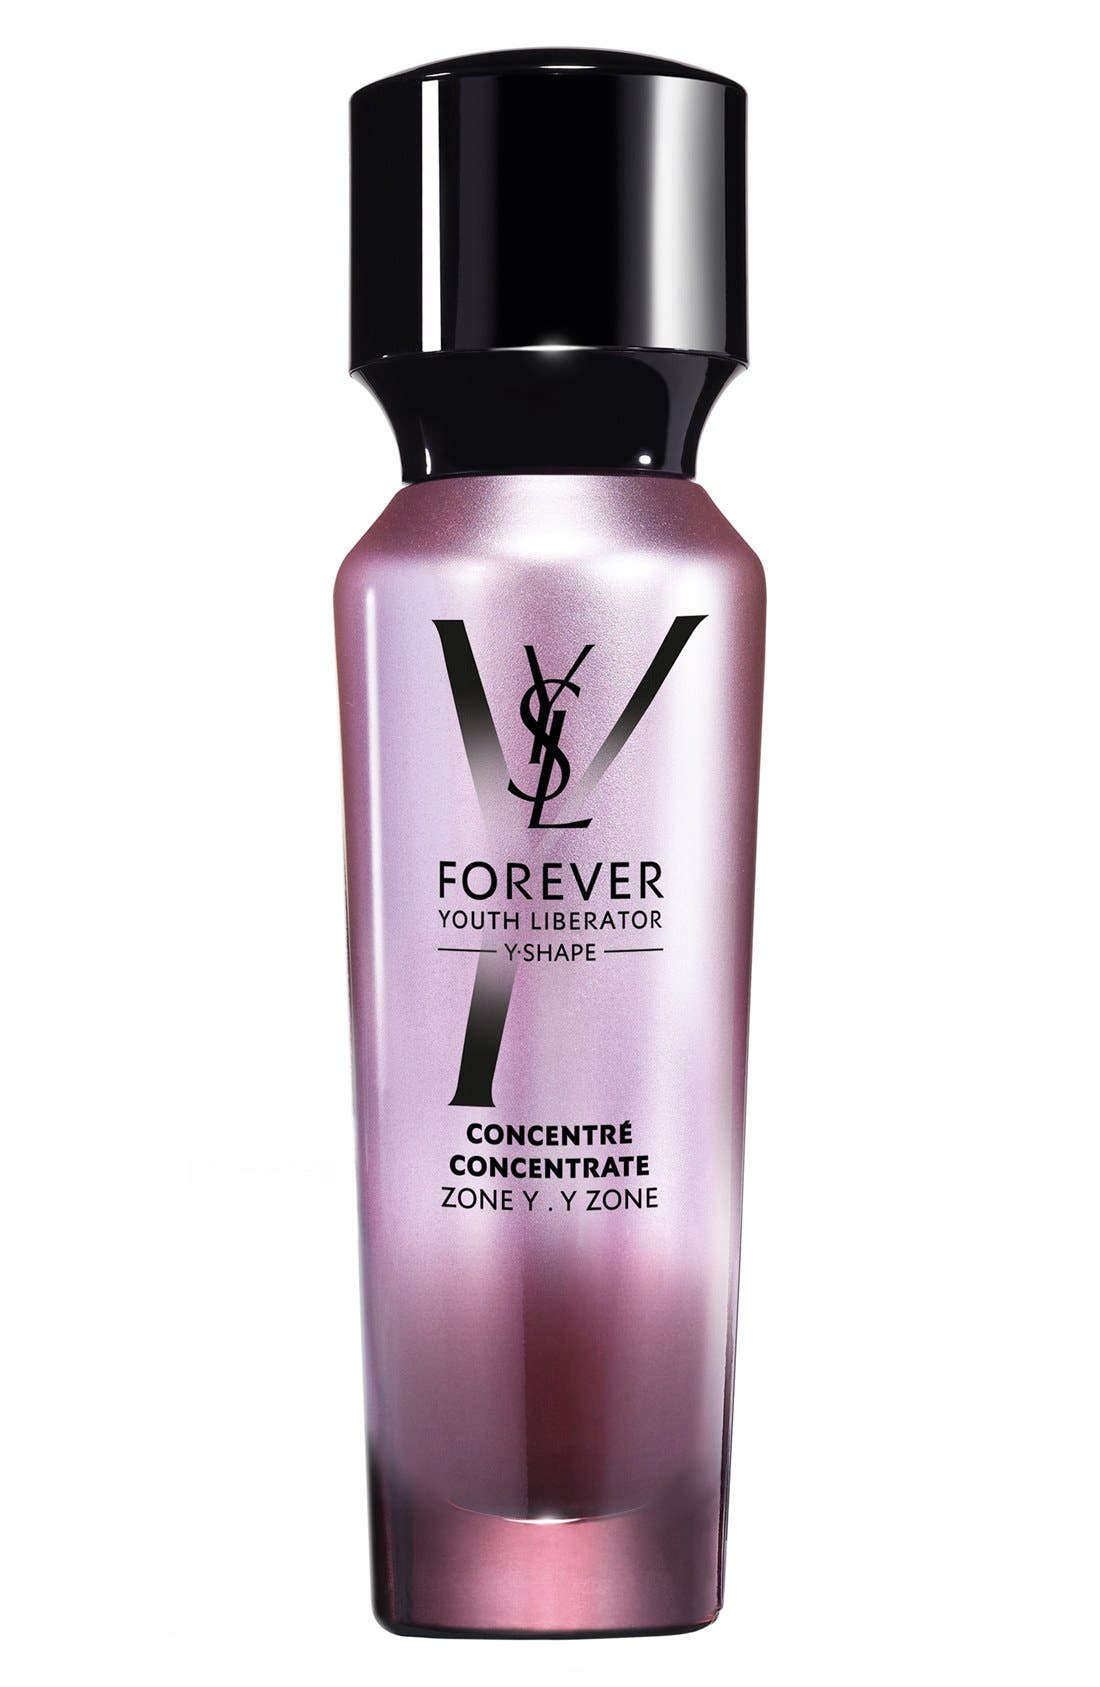 Forever Youth Liberator Y-Shape Concentrate,                         Main,                         color, NONE